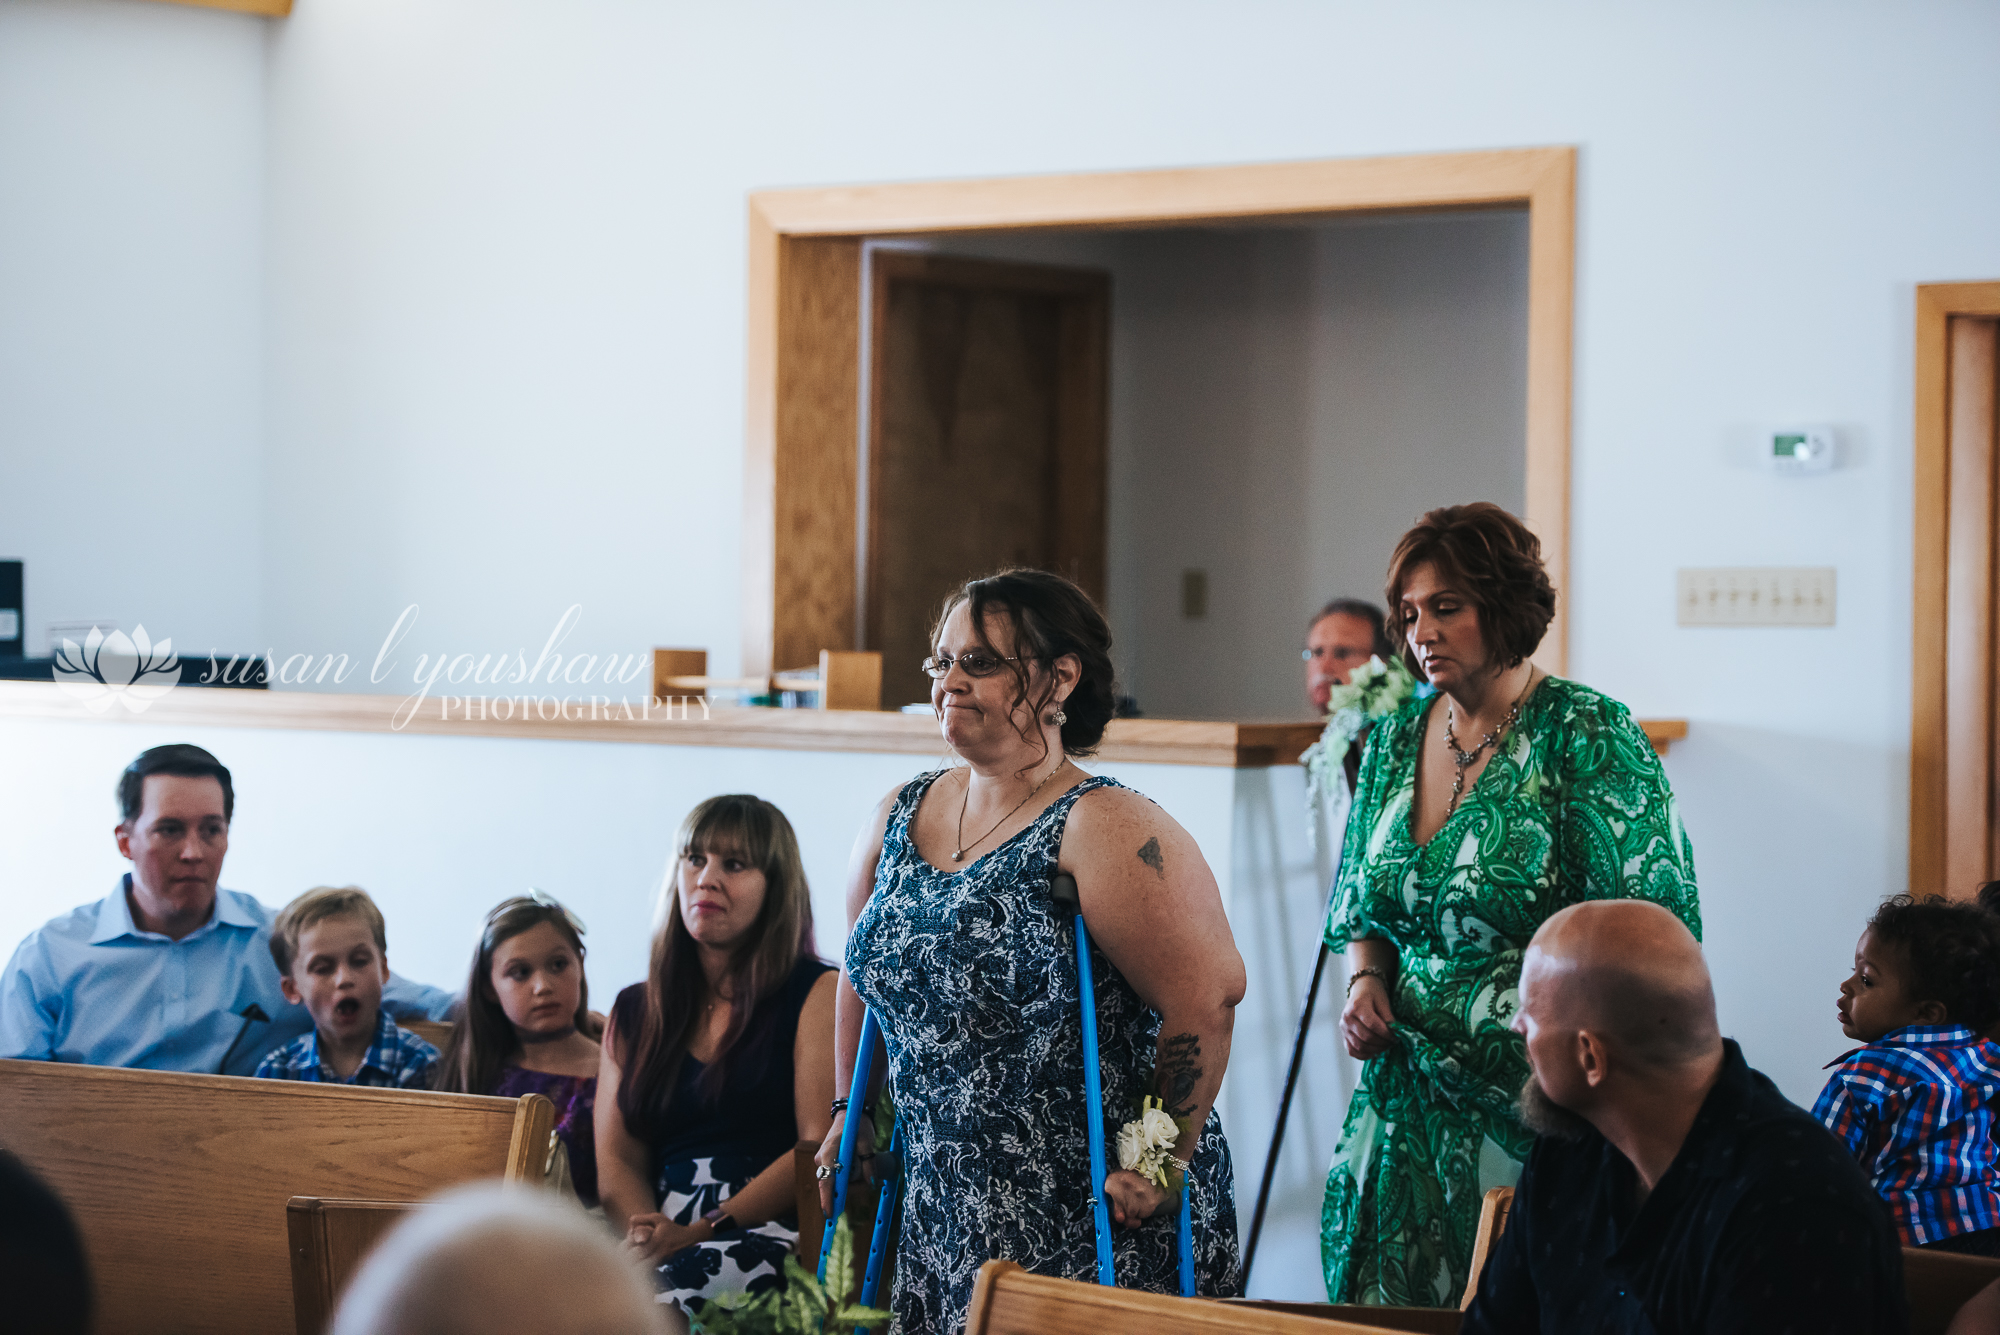 Katelyn and Wes Wedding Photos 07-13-2019 SLY Photography-49.jpg